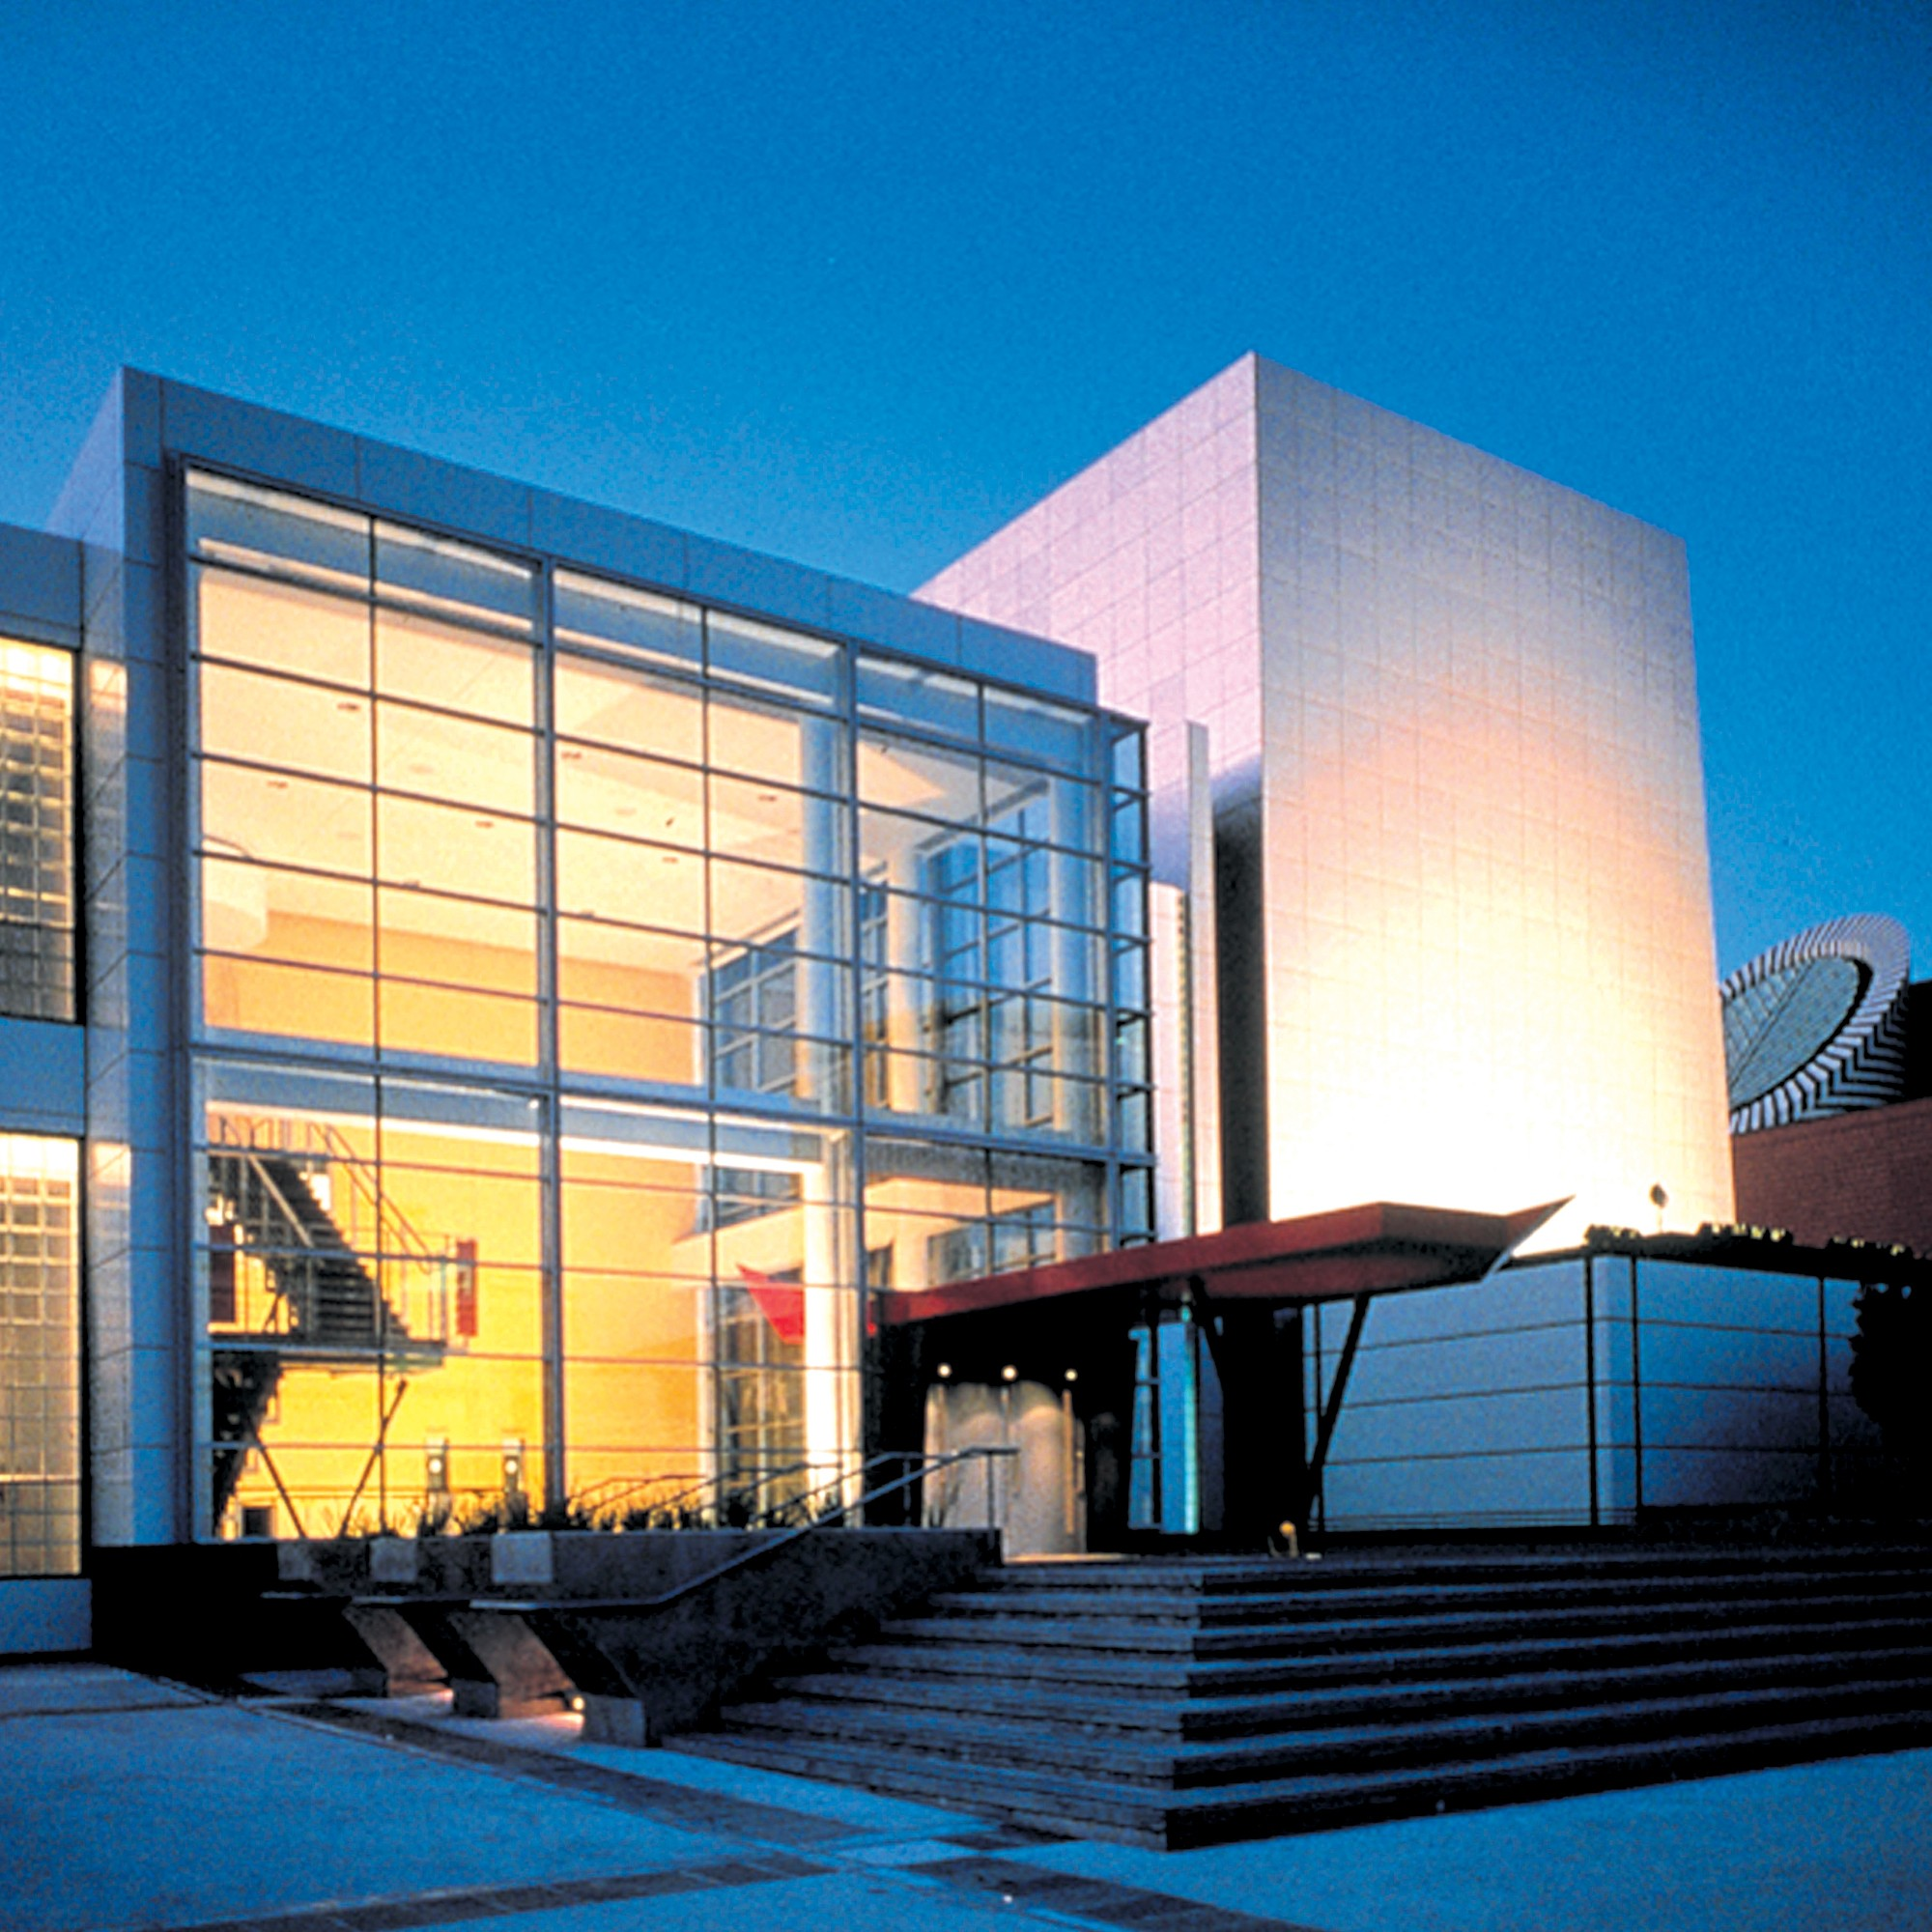 Yerba Buena Center for the Arts (YBCA)